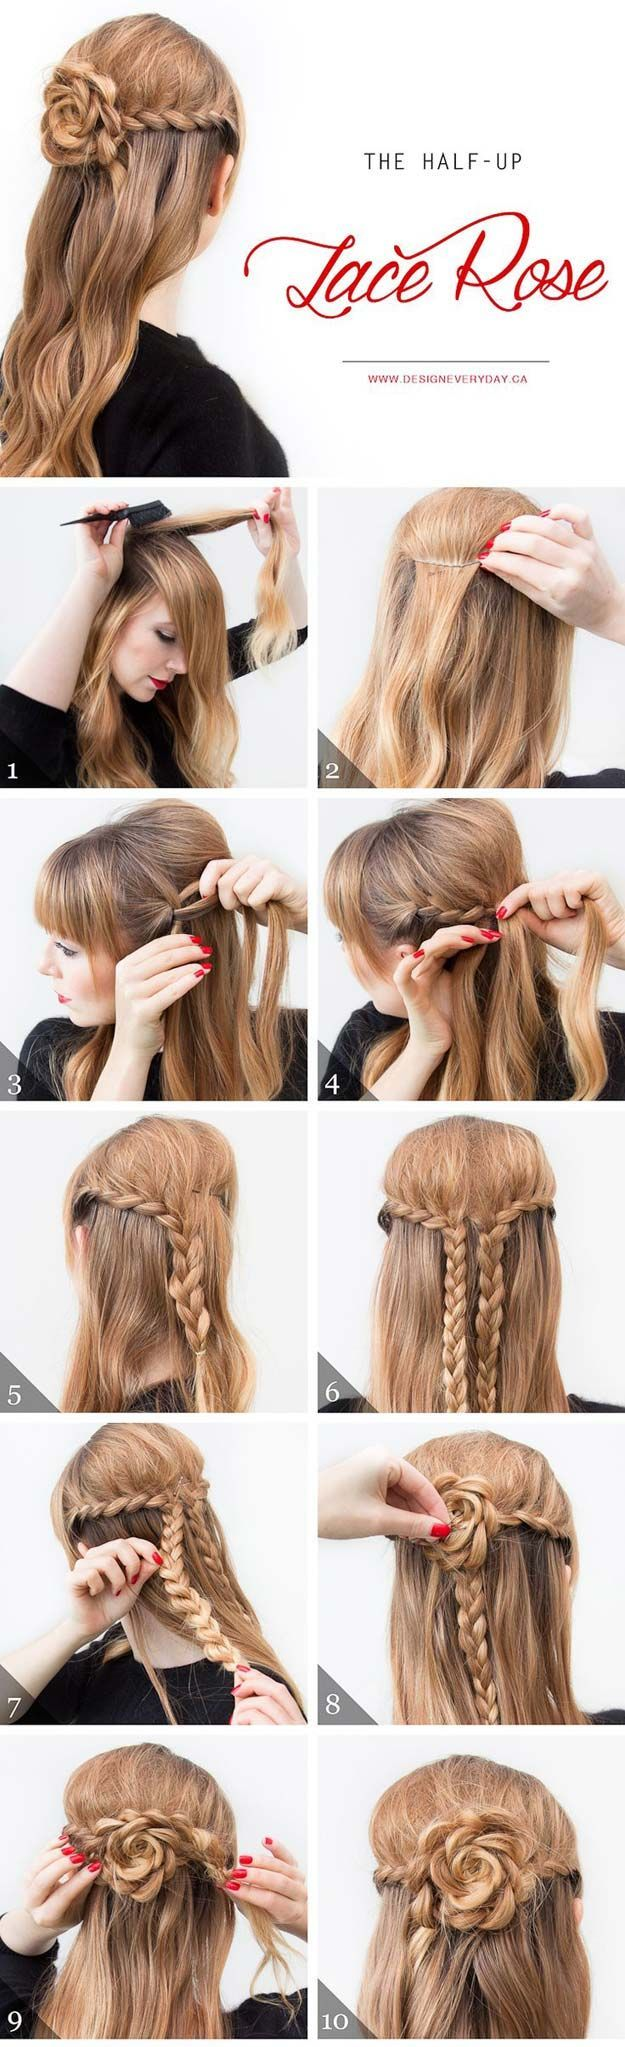 Easy Hairstyles For Short Hair To Do At Home Adorable 41 Diy Cool Easy Hairstyles That Real People Can Actually Do At Home